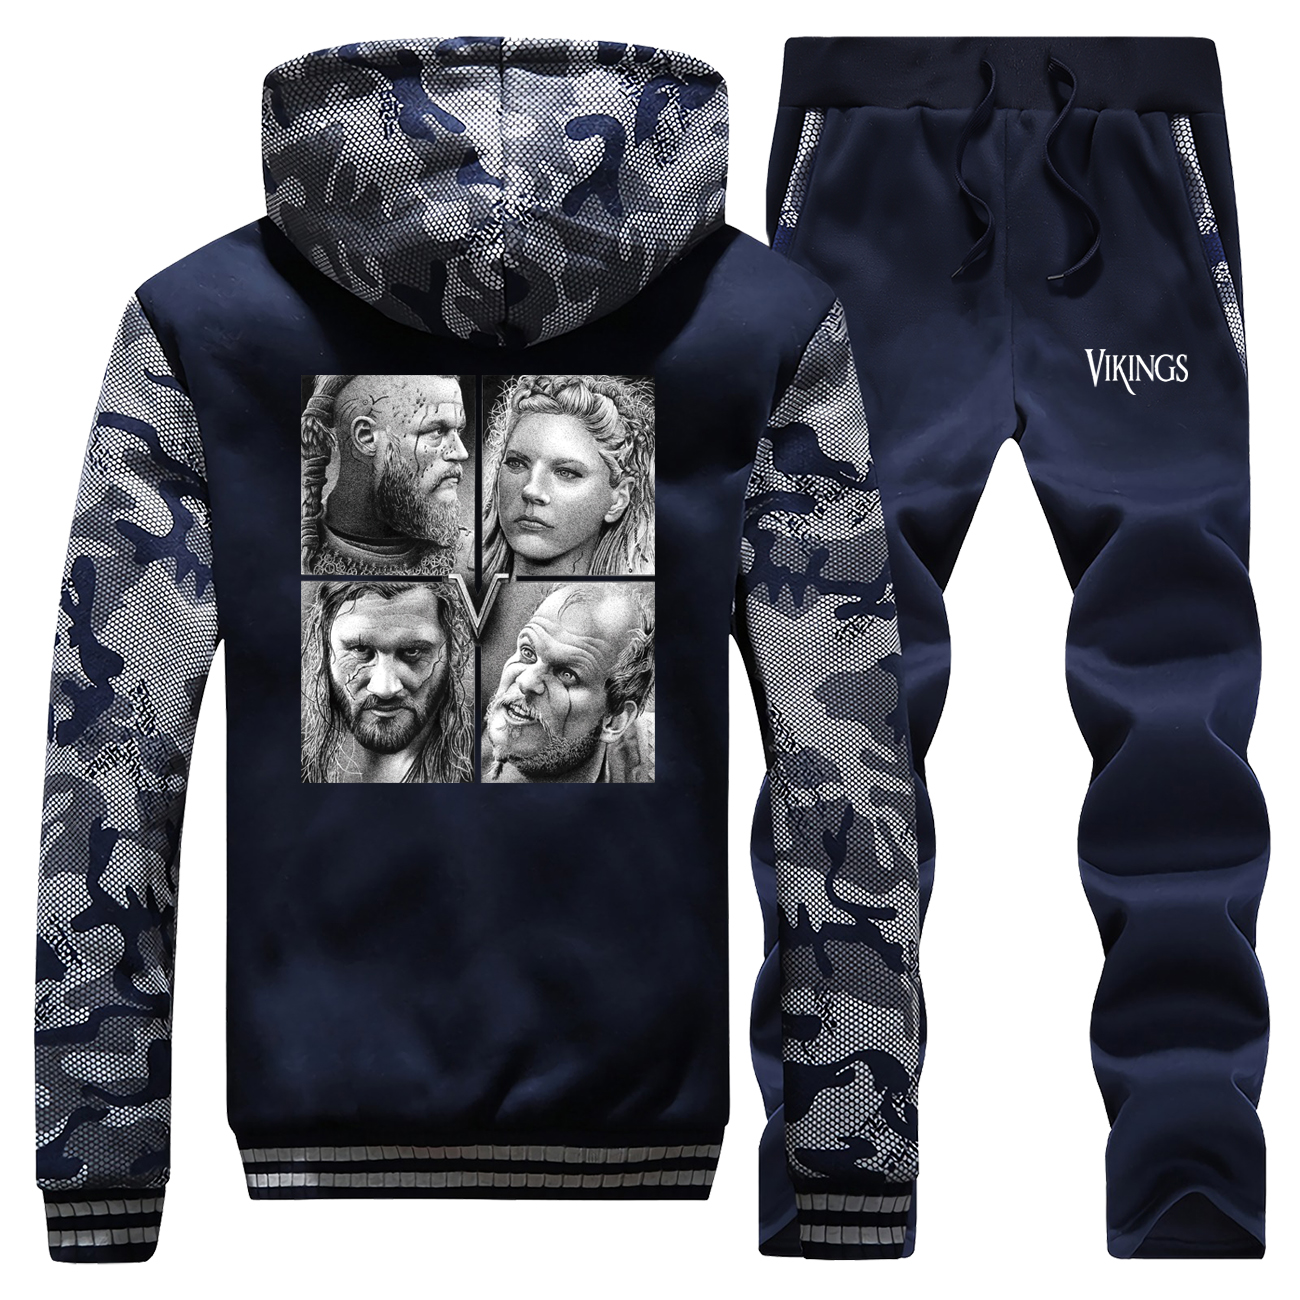 Winter Hot Sale Mens Hoodie TV Show Vikings Camouflage Sportswear Vintage Print Coat Thick Suit Warm Jackets+Pants 2 Piece Set